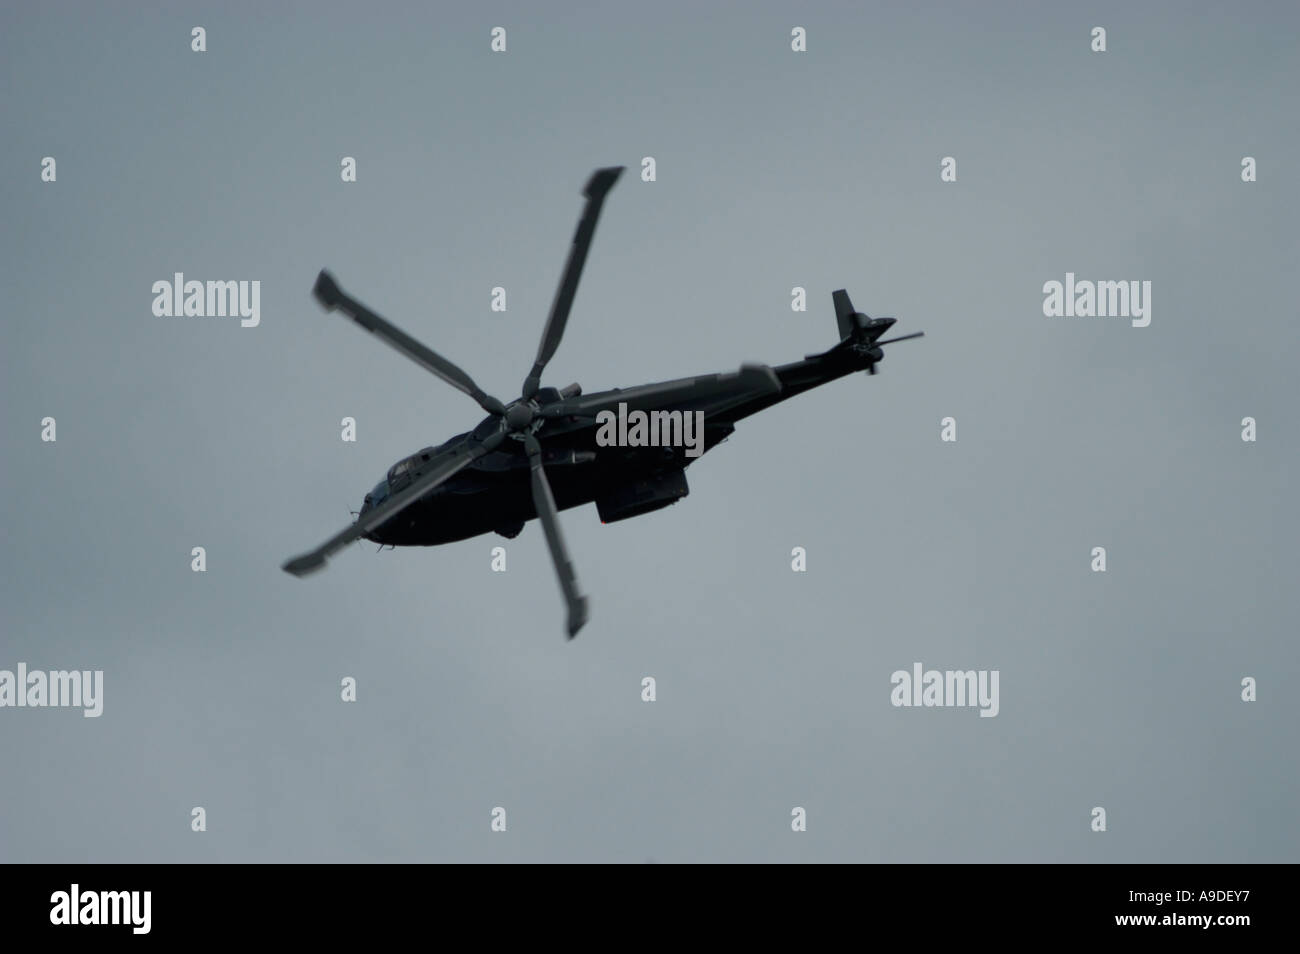 RAF Merlin Helicopter - Stock Image